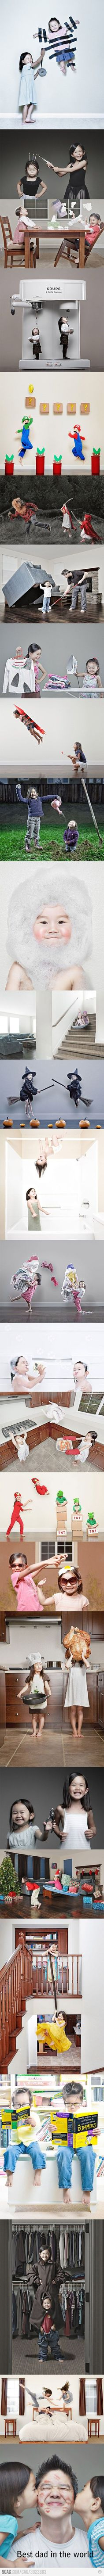 What cute ideas - this Dad is so creative and sweet with his girls :)